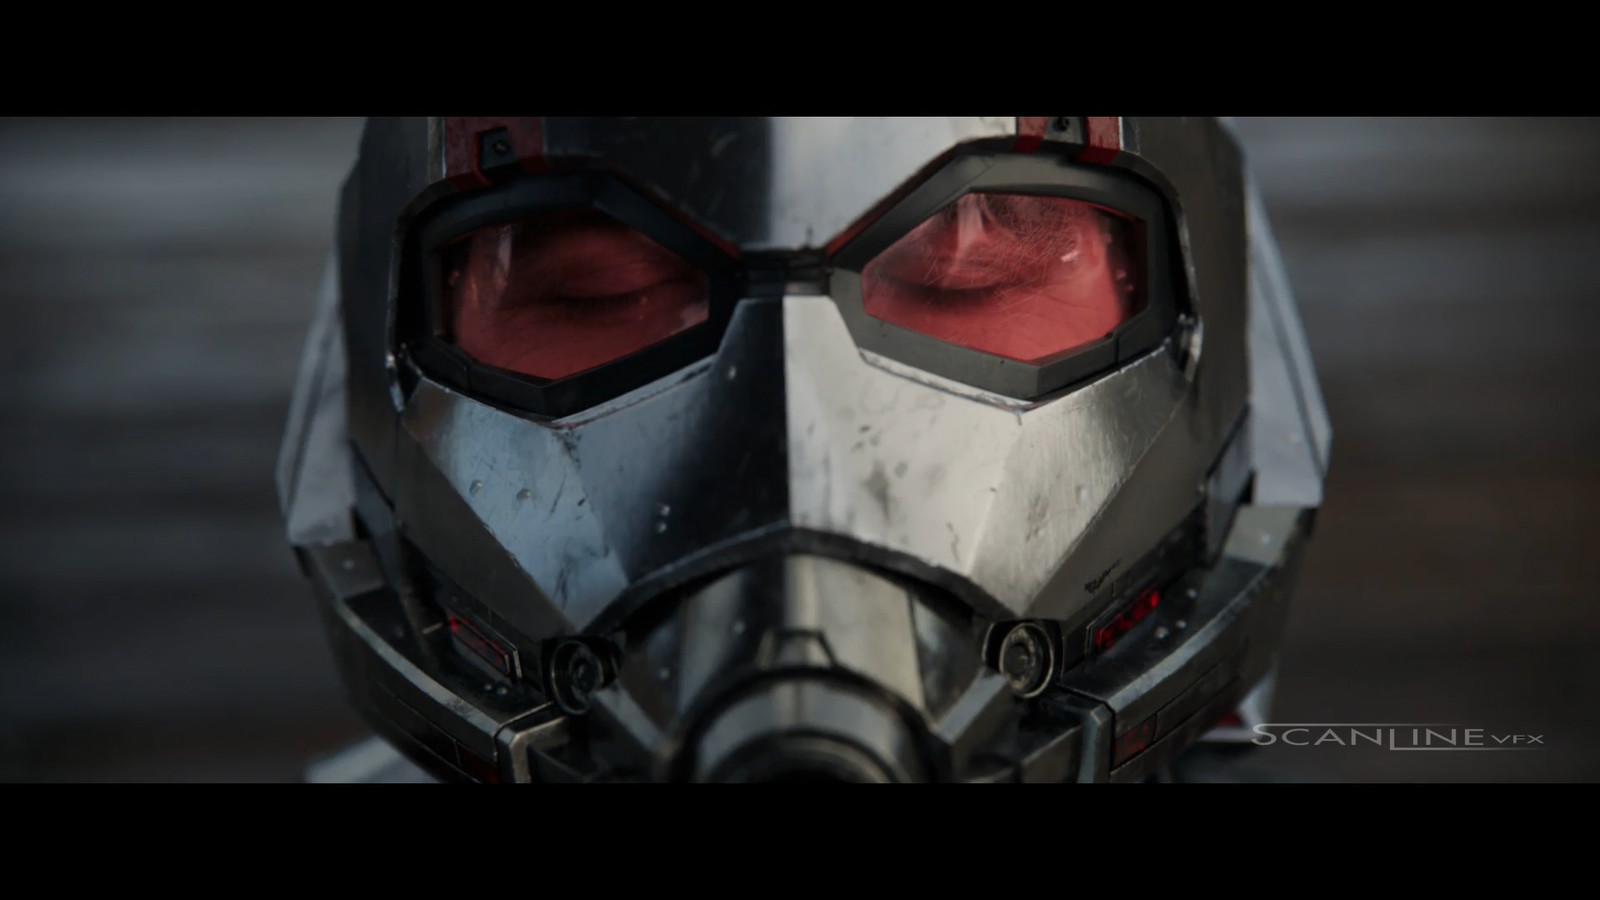 Compositing and integration work I have done in 2018 at Scanline VFX, as a Lead Compositor. Featuring: Ant-man and The Wasp.